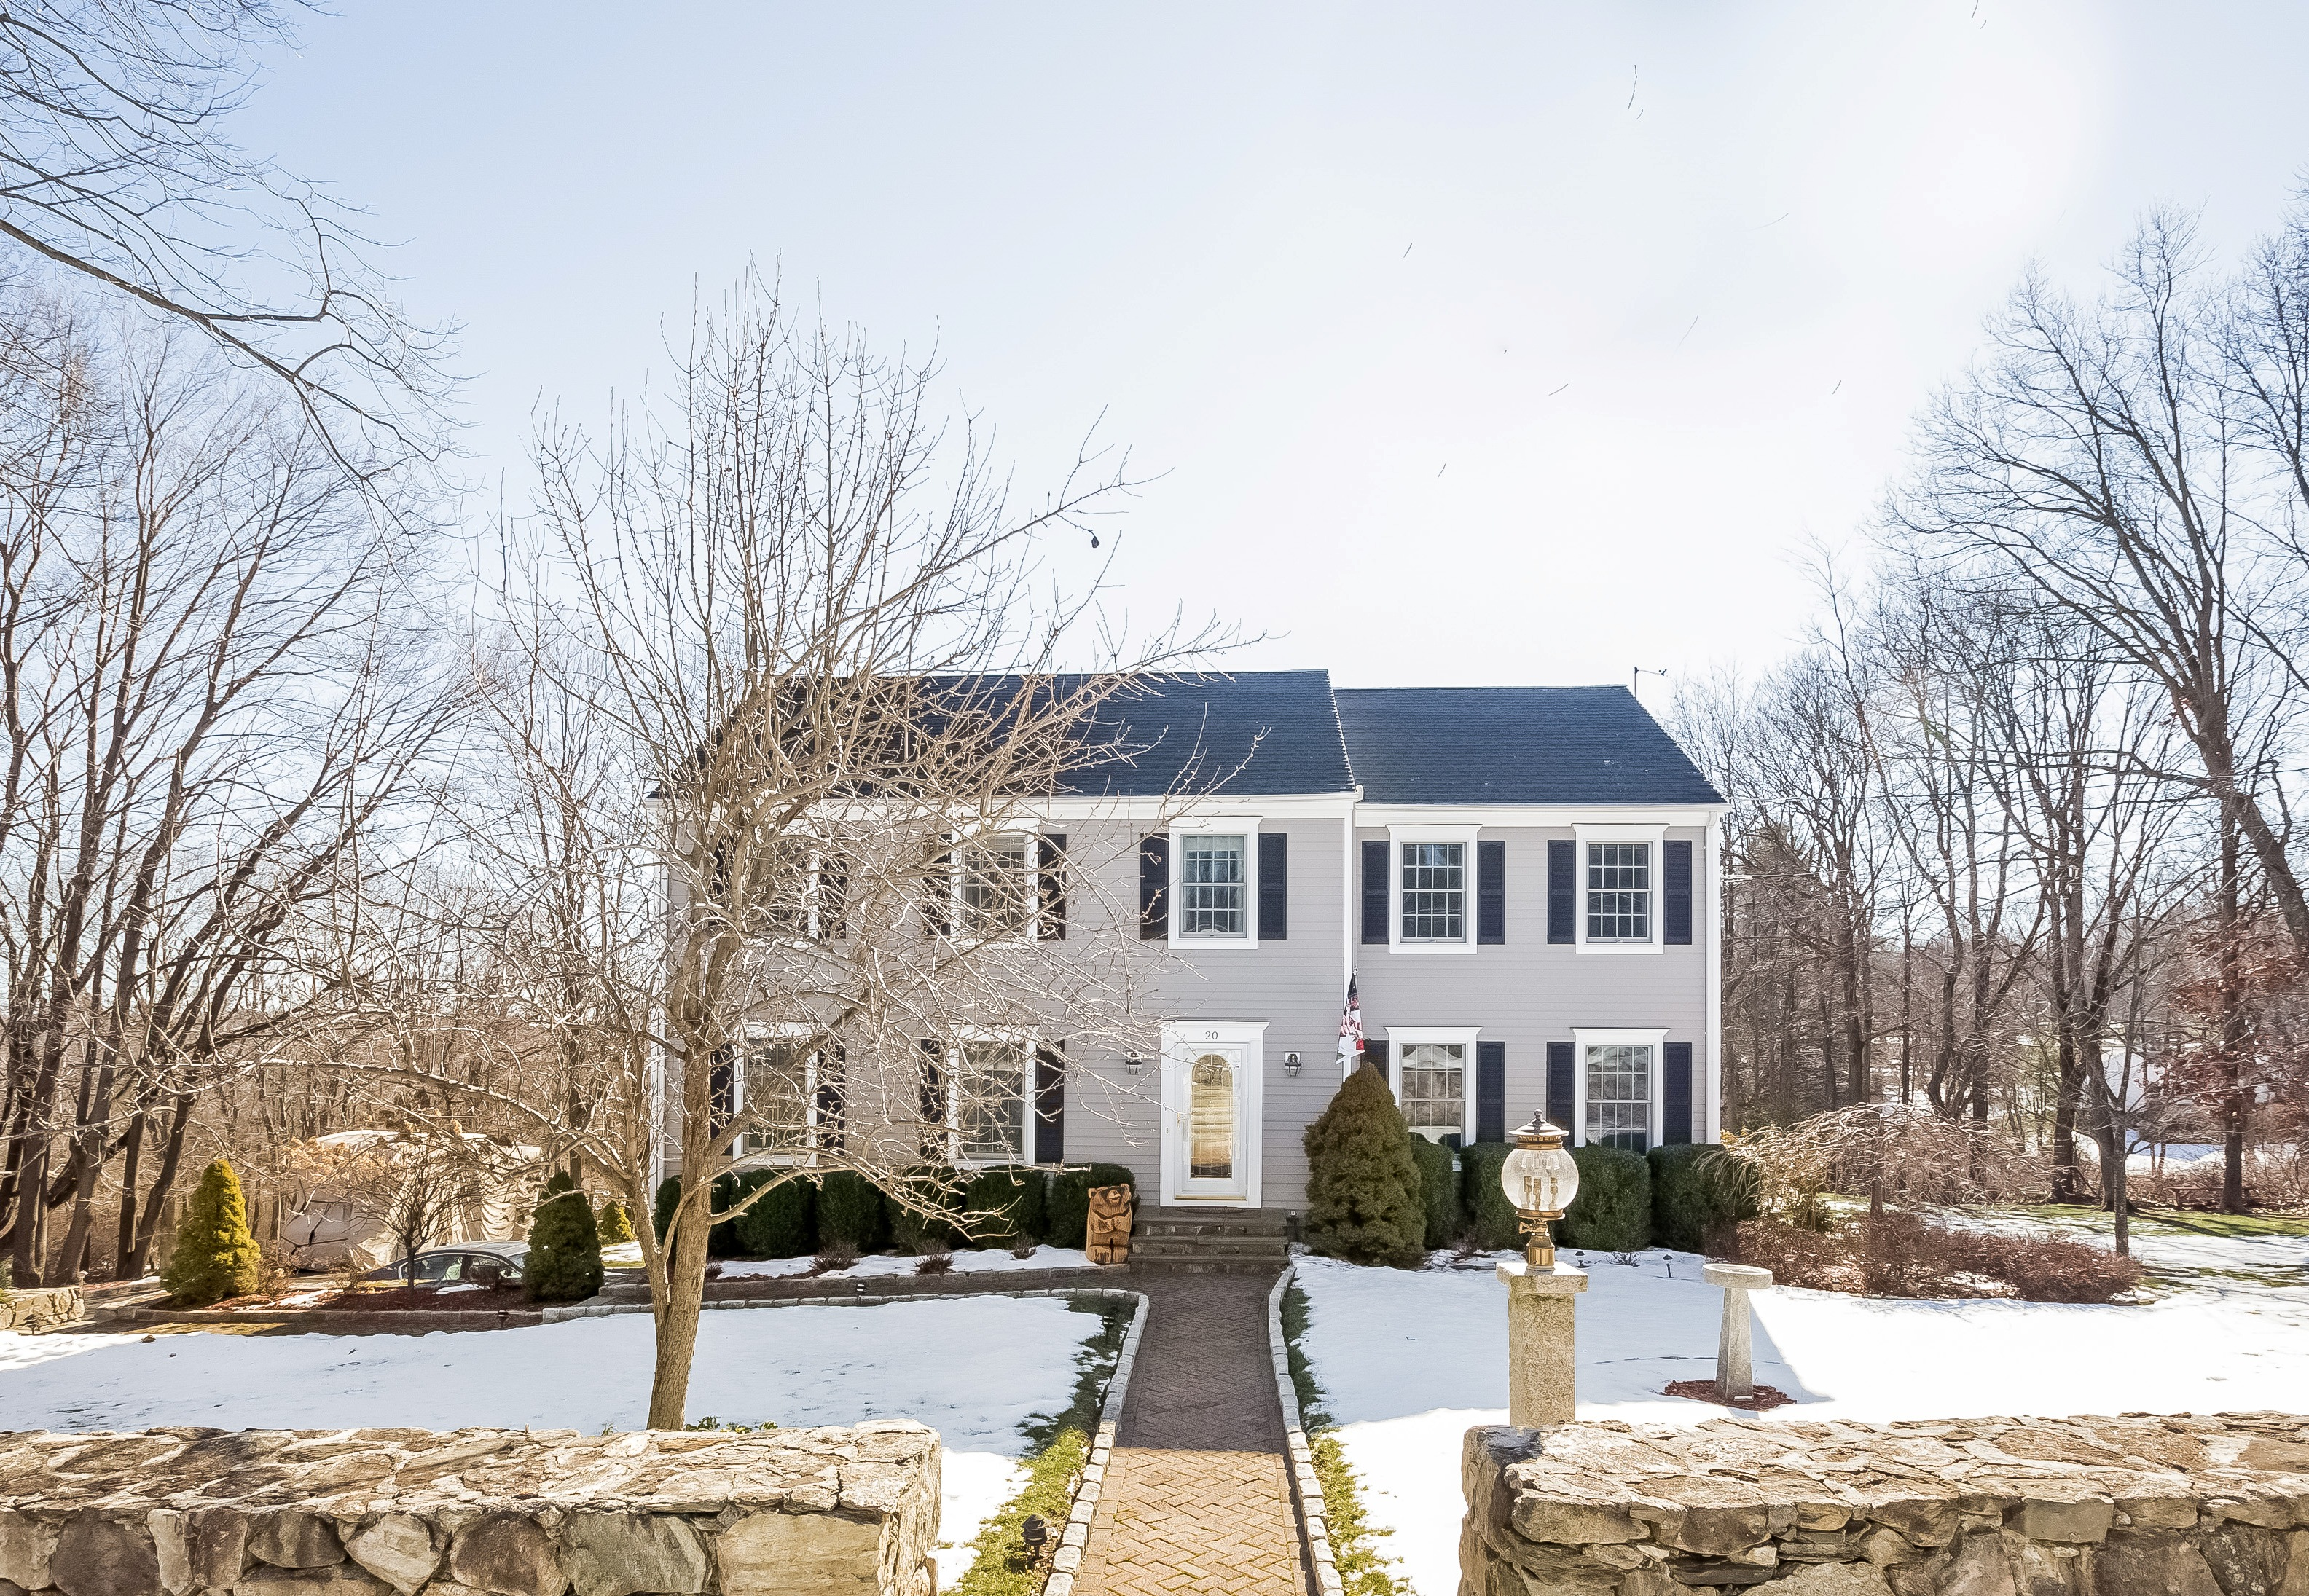 Single Family Home for Sale at Desirable Southern Ridgefield 20 Soundview Road Ridgefield, Connecticut 06877 United States